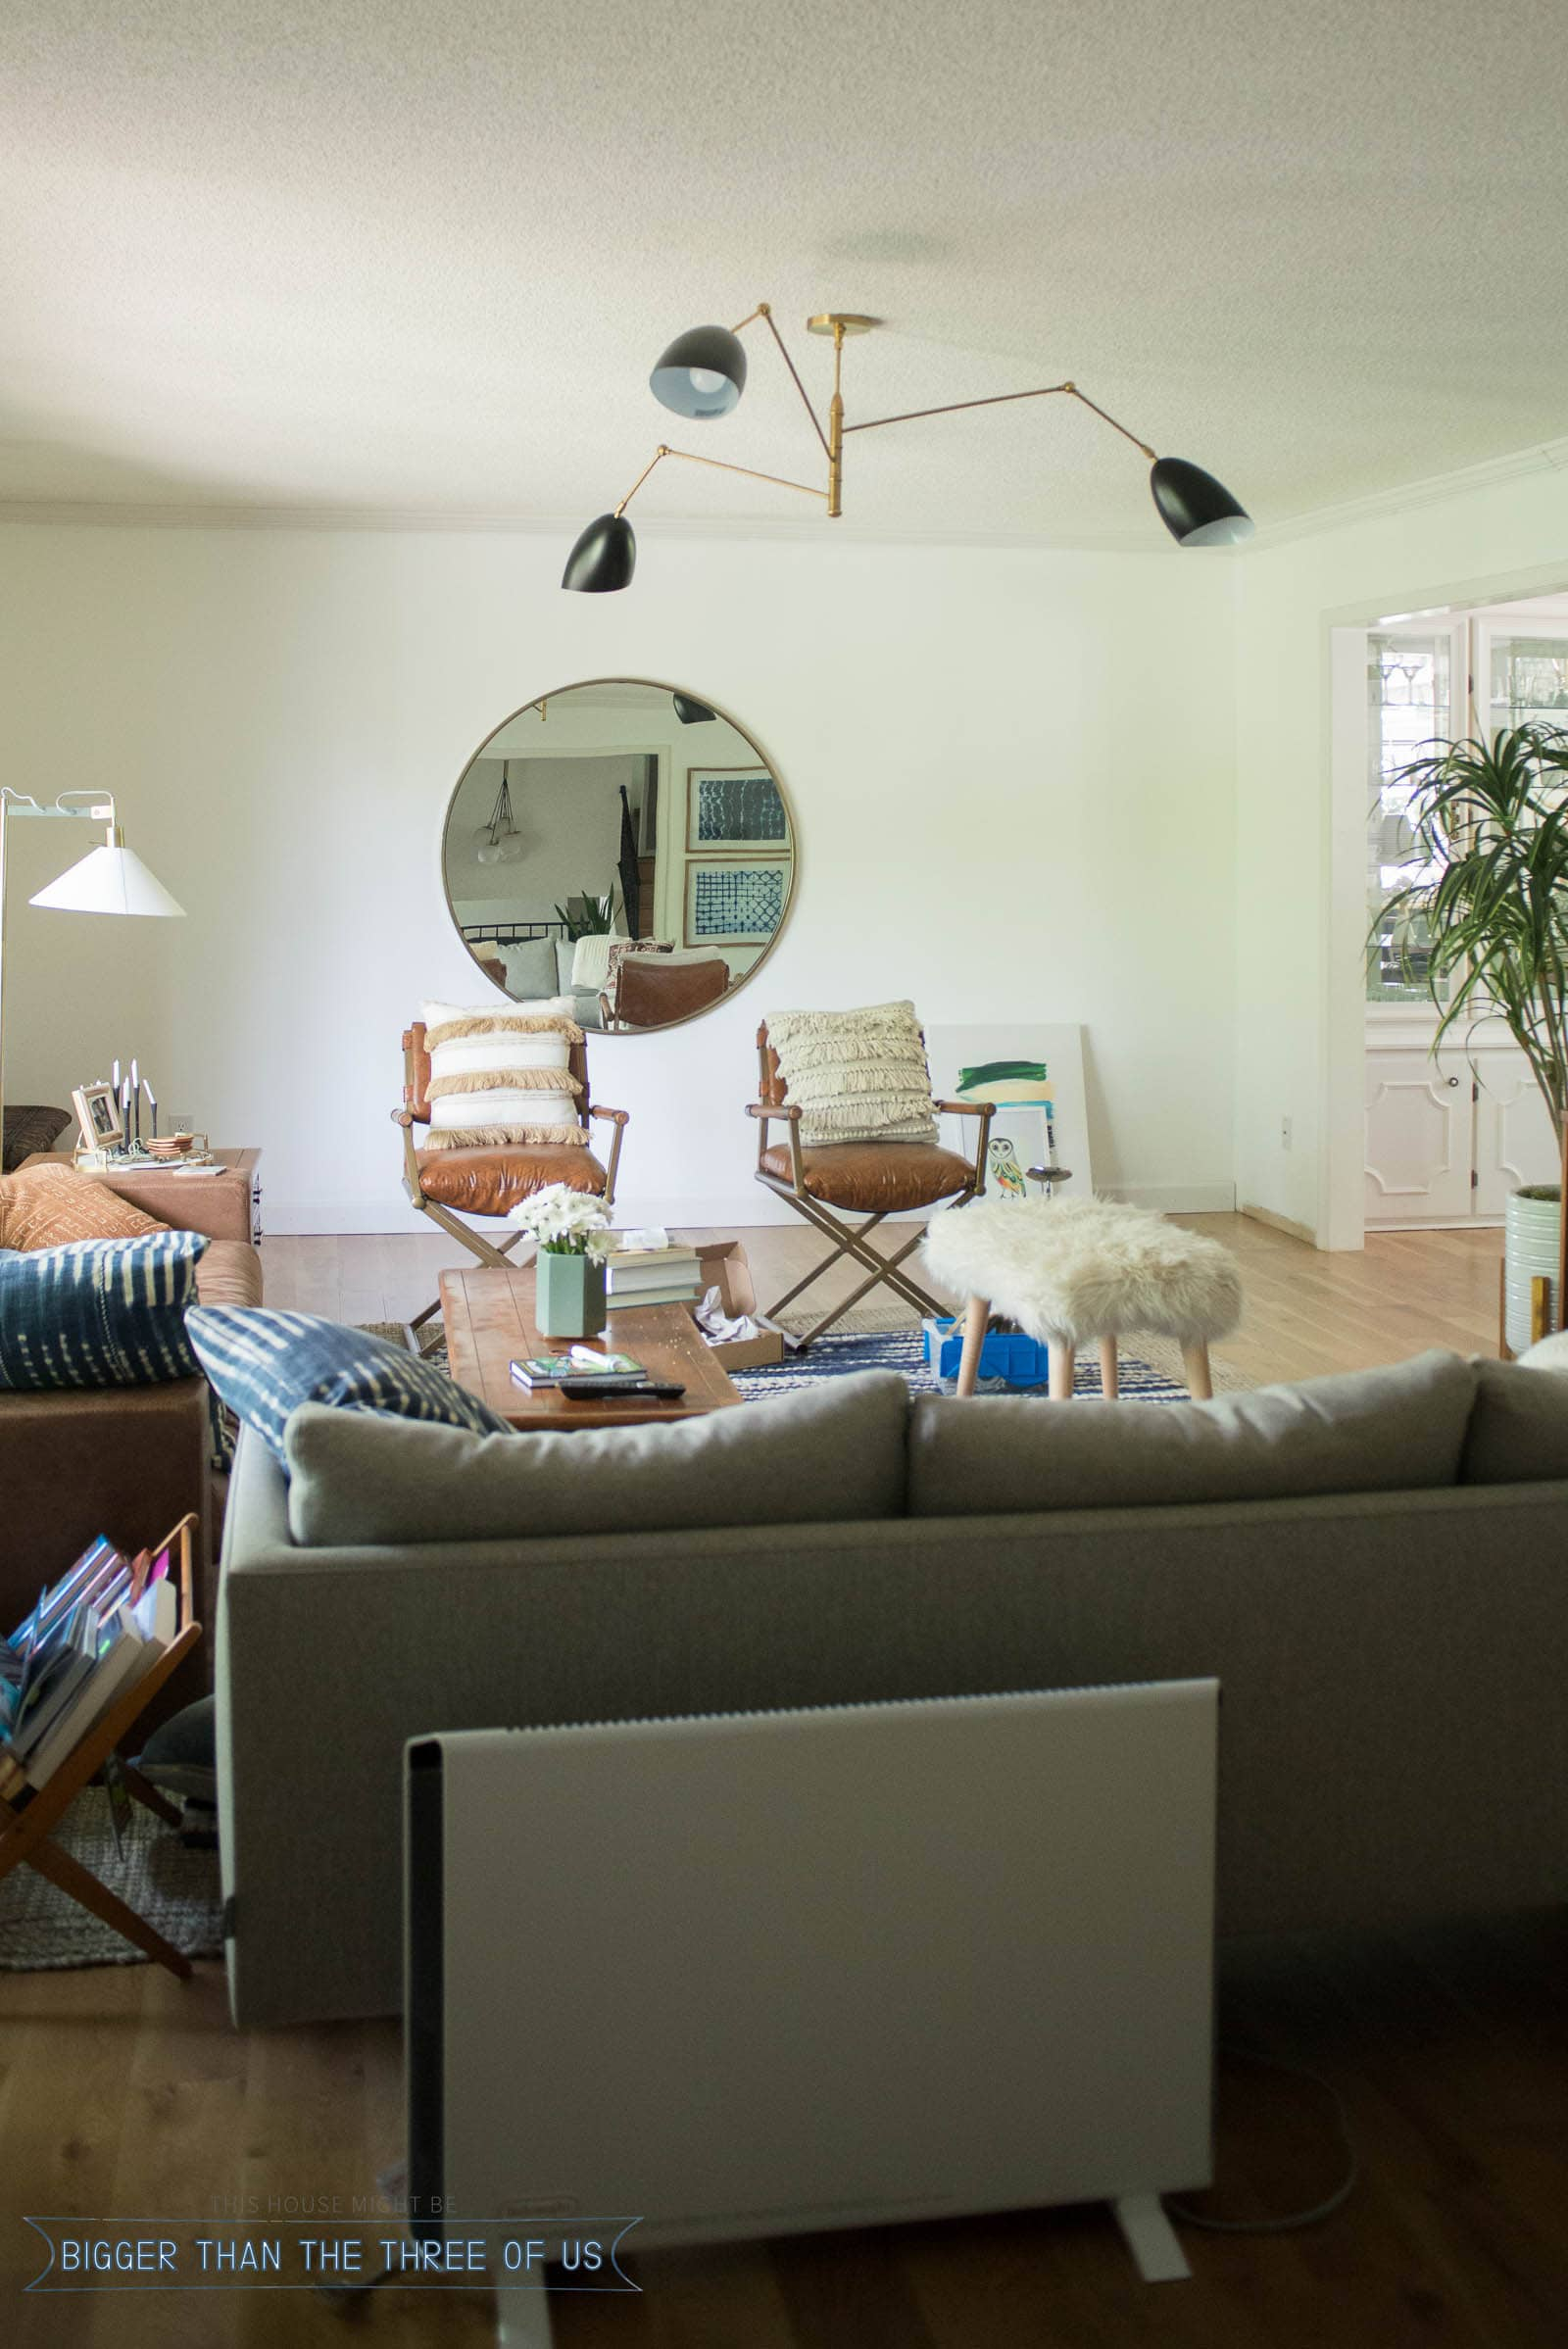 Living Room - Behind the scenes of what a Home Blogger's space really looks like